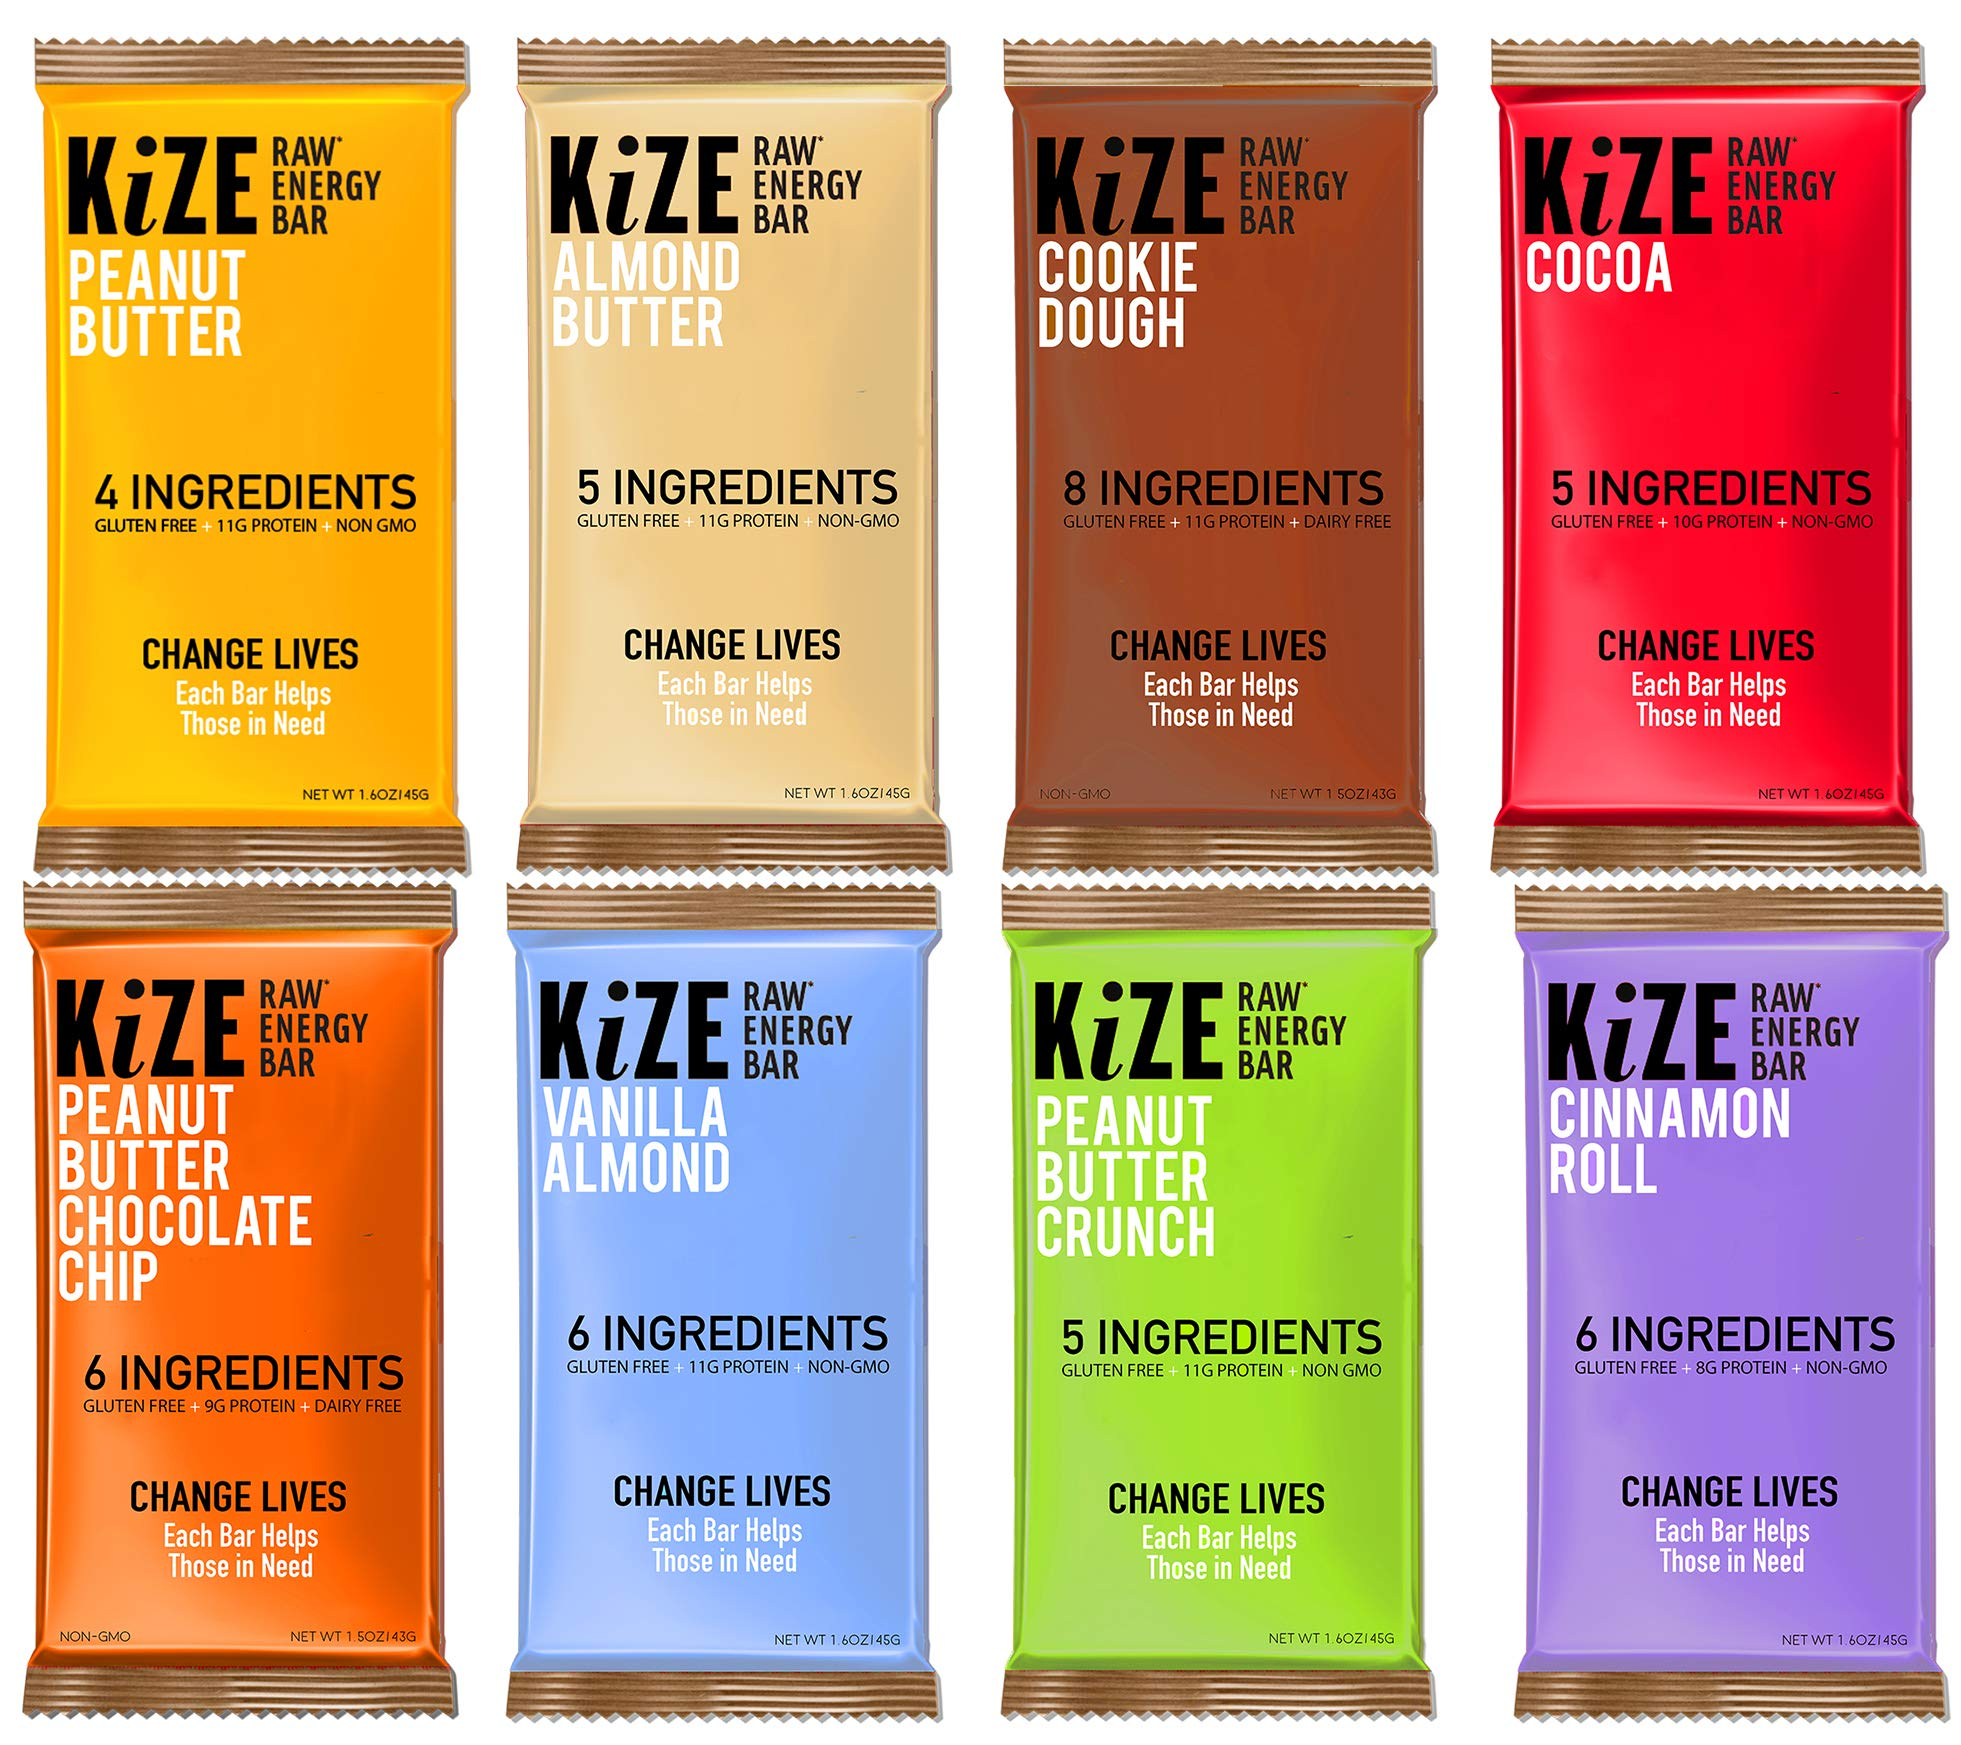 KiZE - (10 Pack) Raw Energy Bars - 7 Flavor Variety Pack - Non GMO, Gluten Free, No Added Sugar, Bulletproof by Kize